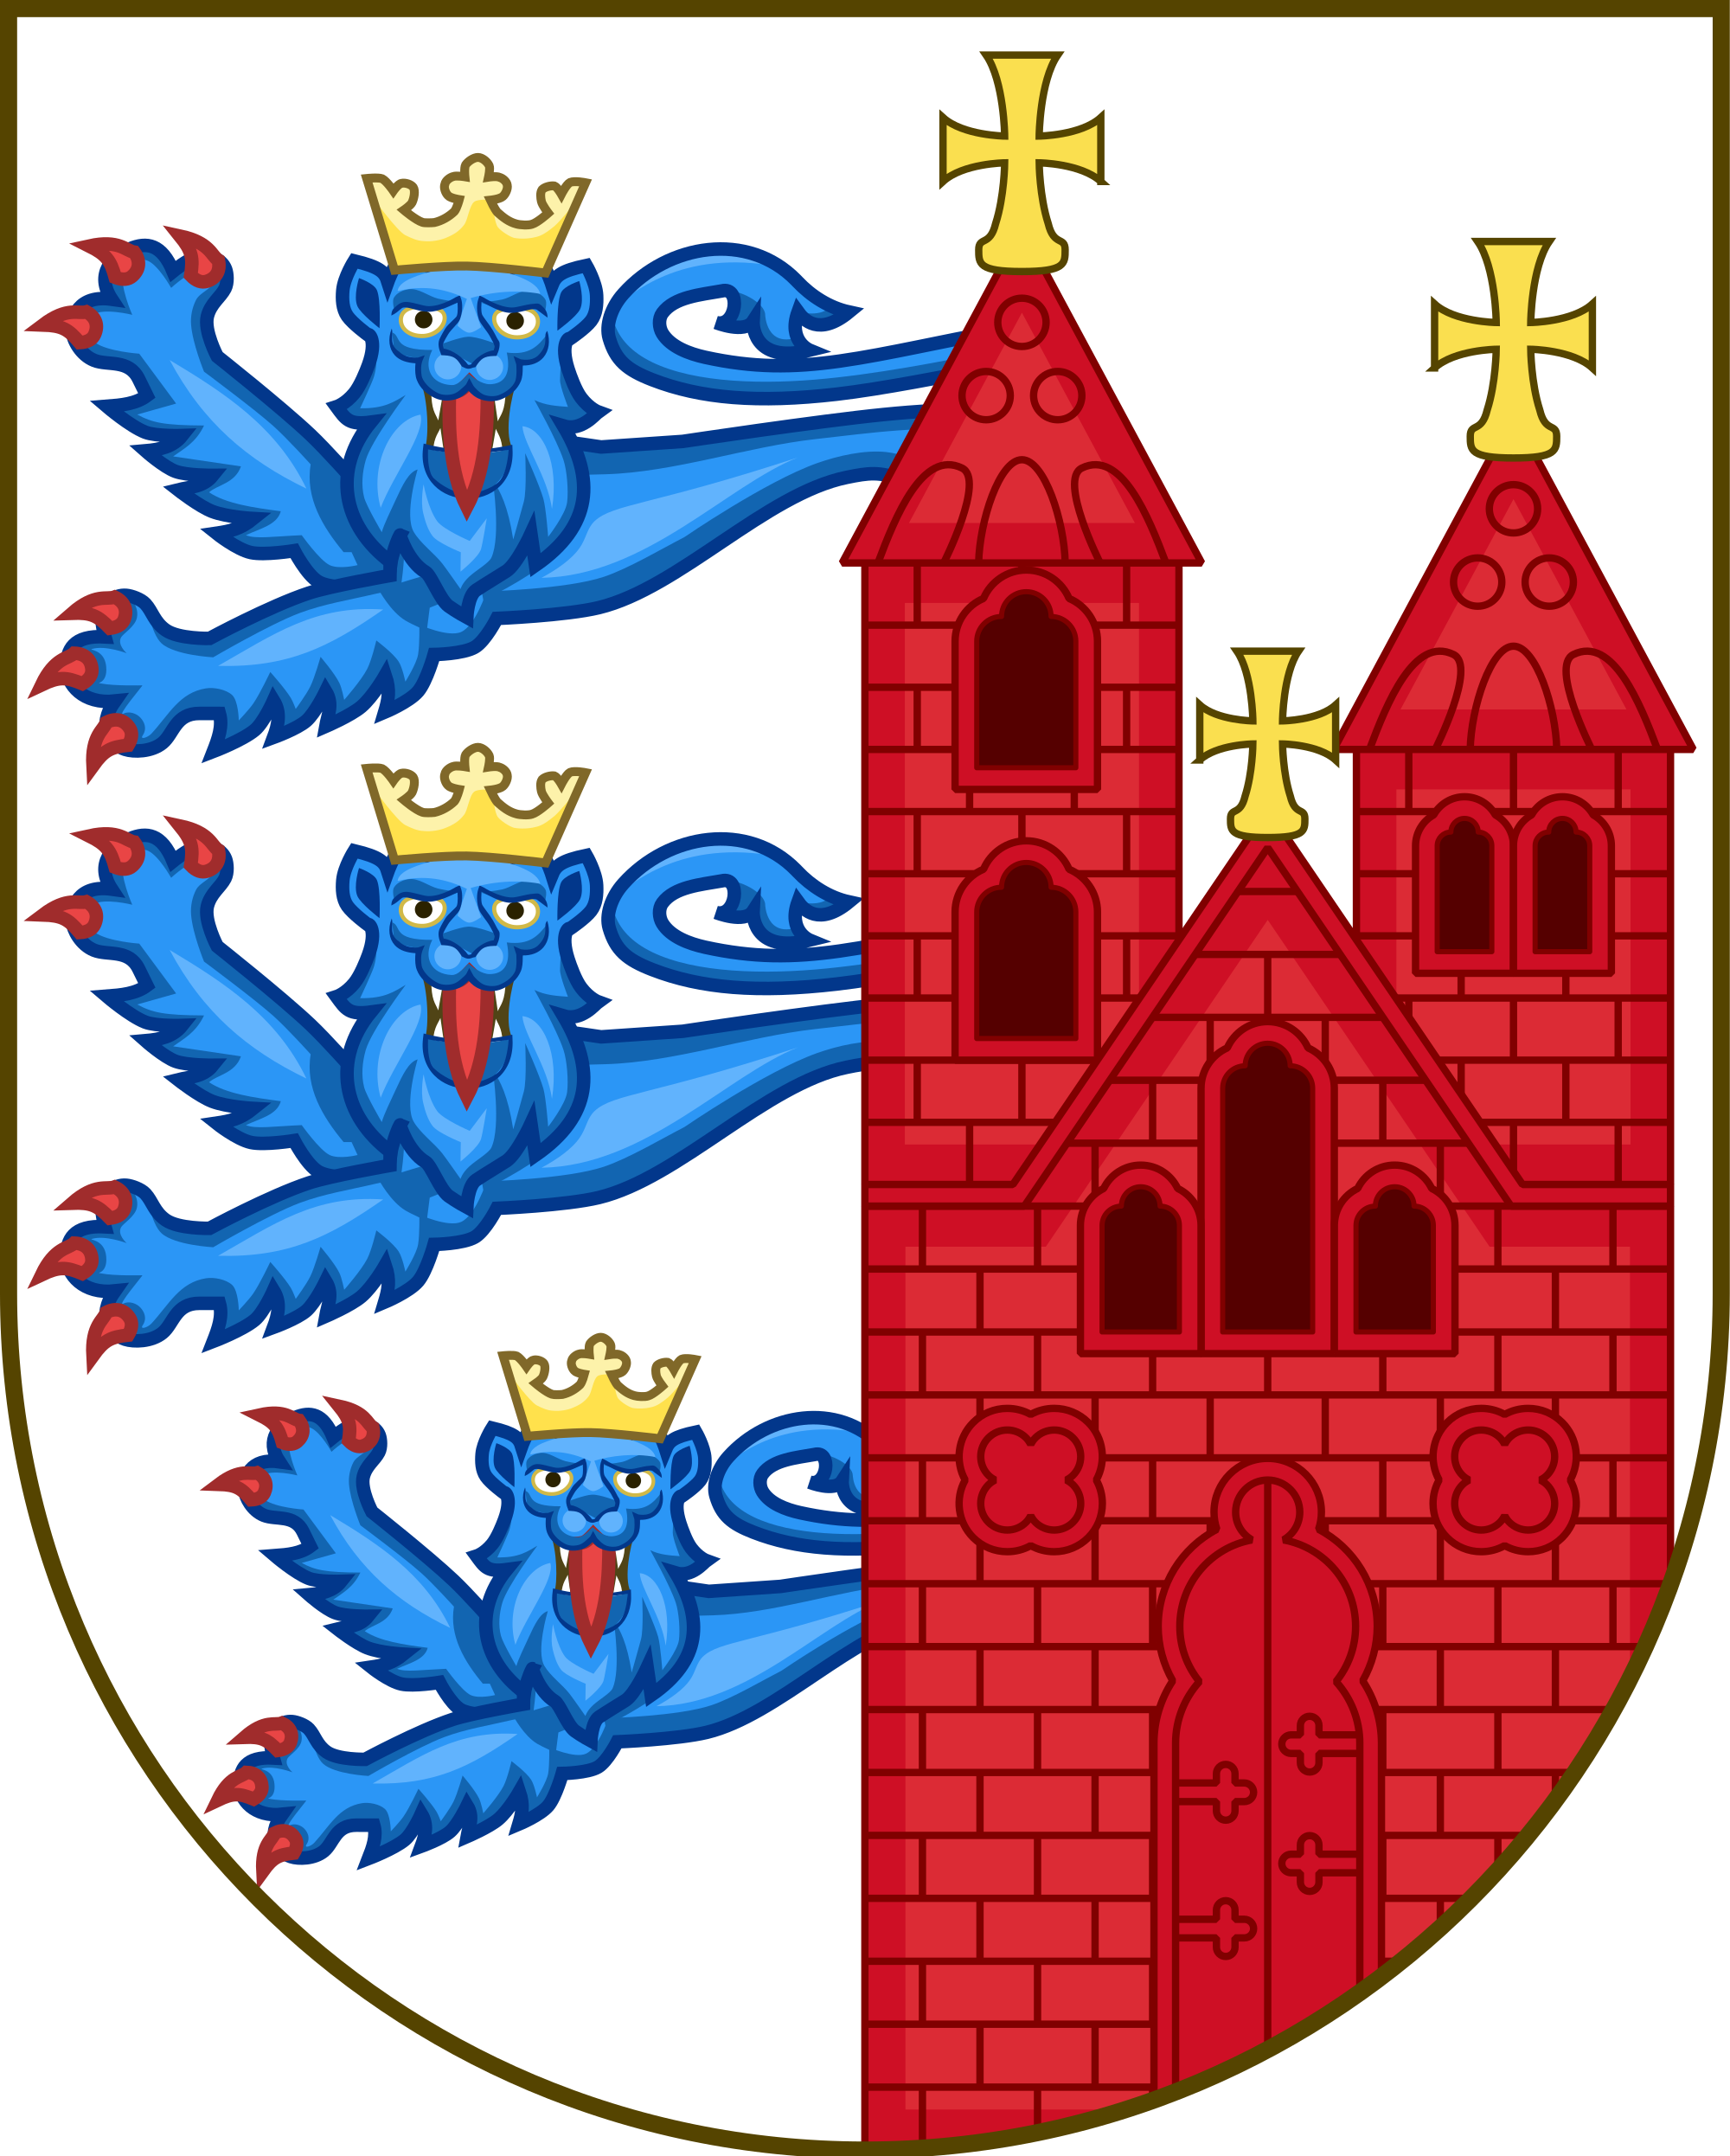 File:Coat of arms of Ribe.svg.